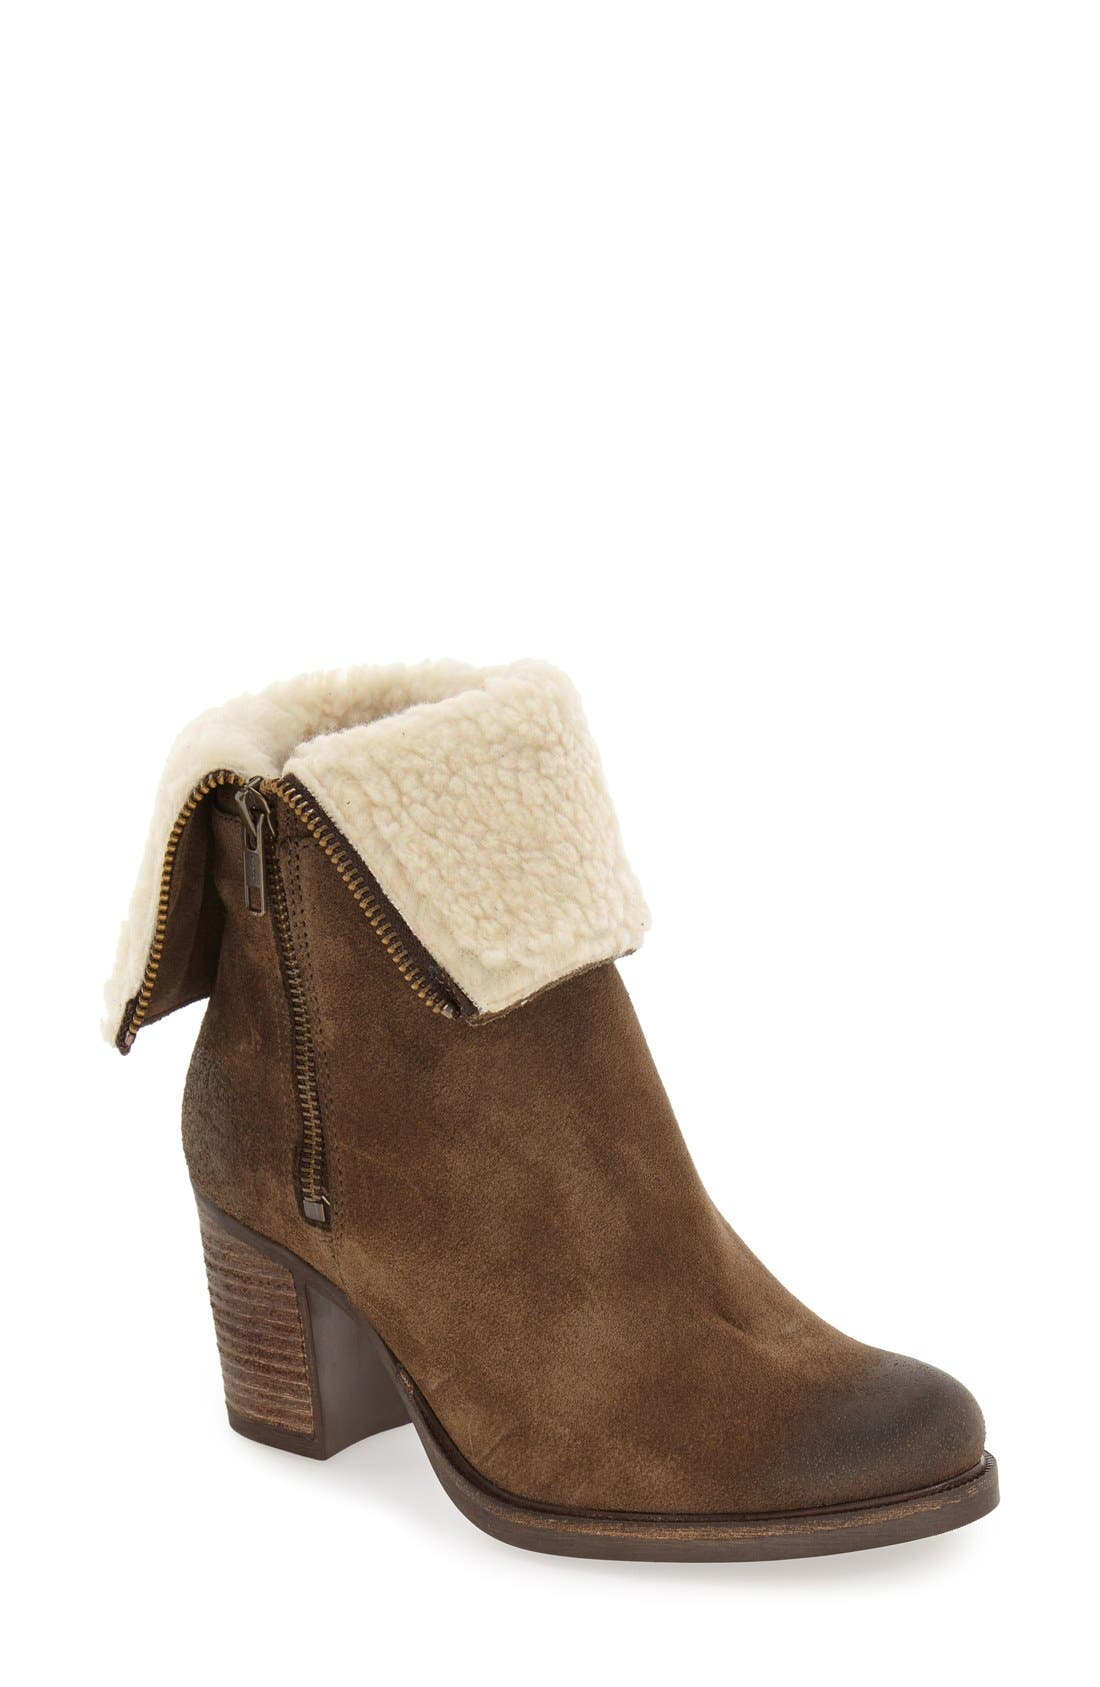 BOS. & CO. 'Beverlee' Waterproof Mid-Calf Boot